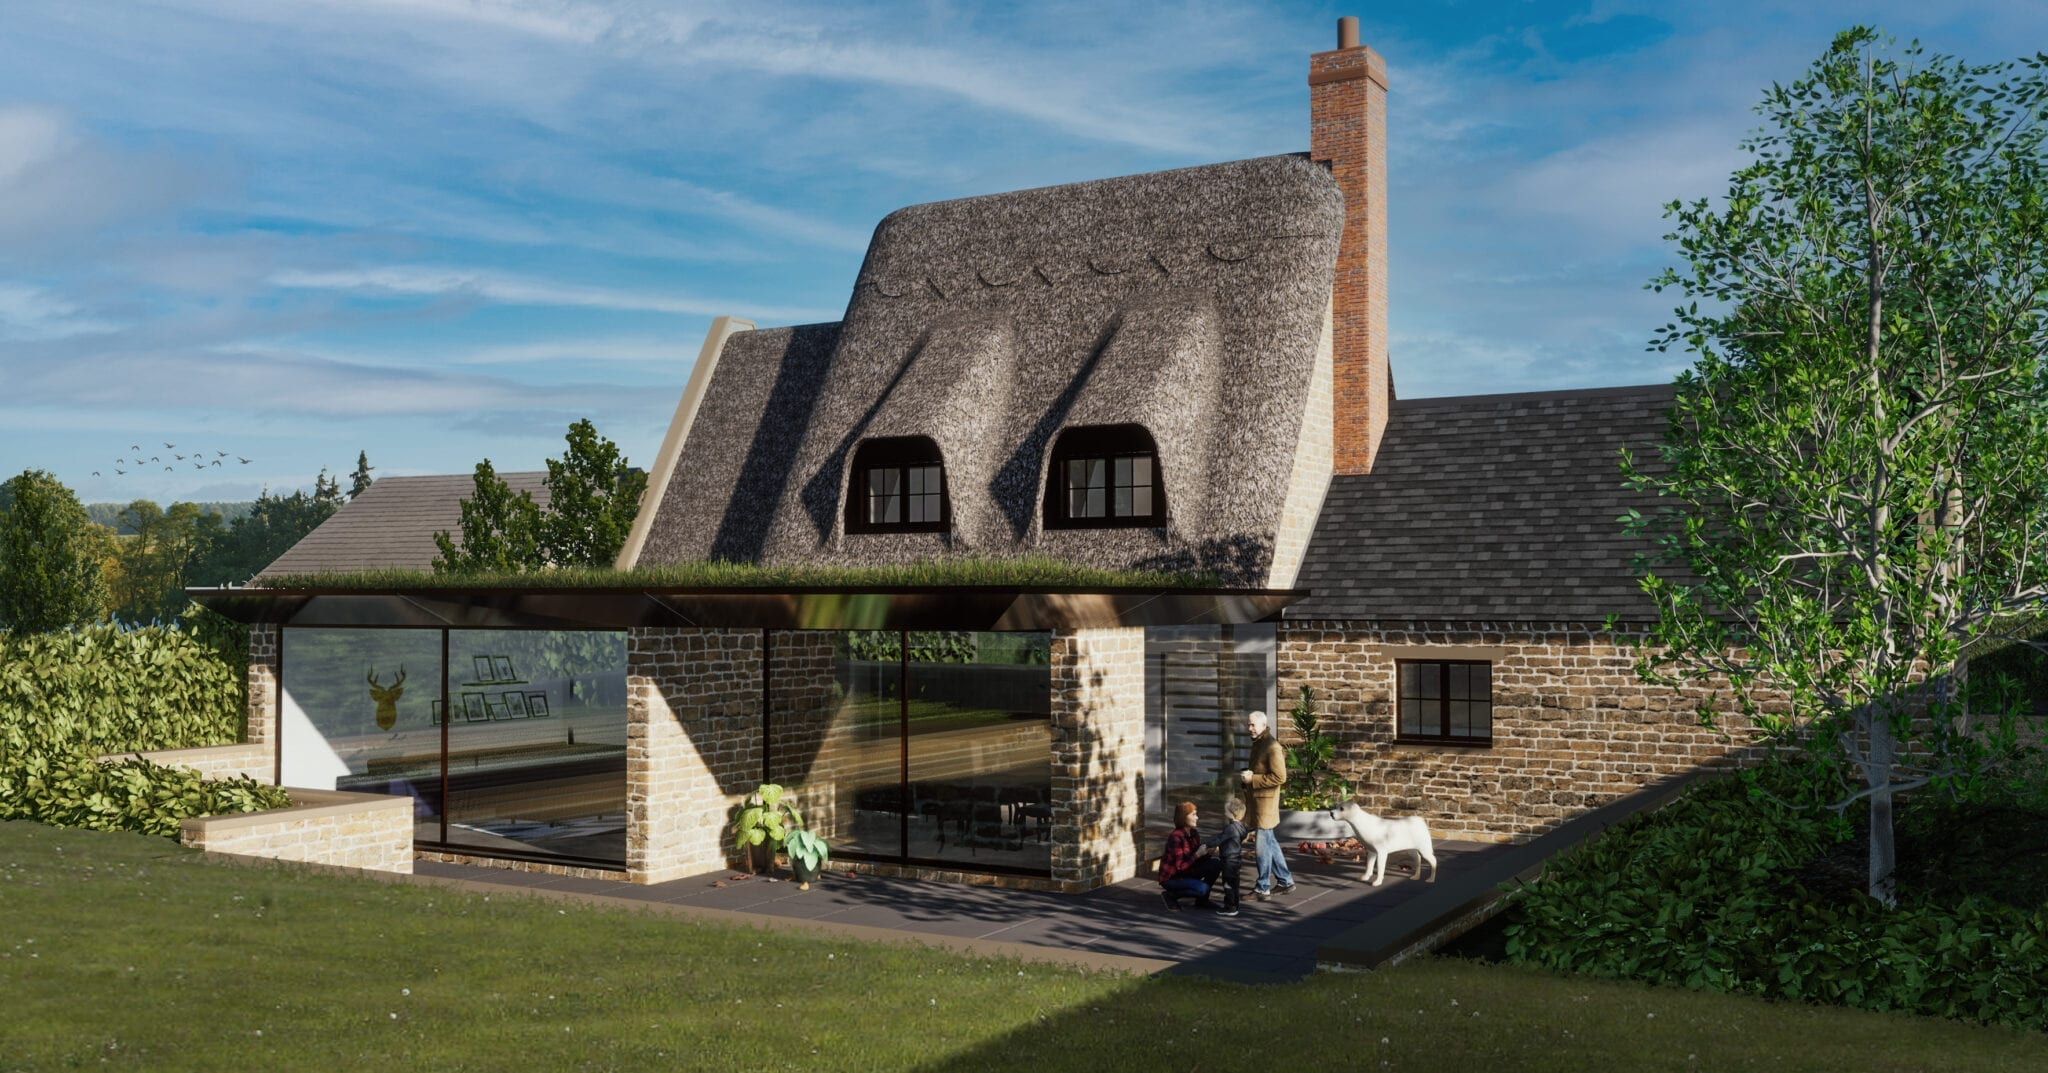 Planning Submitted for Traditional New Build Thatch Dwelling with a twist…